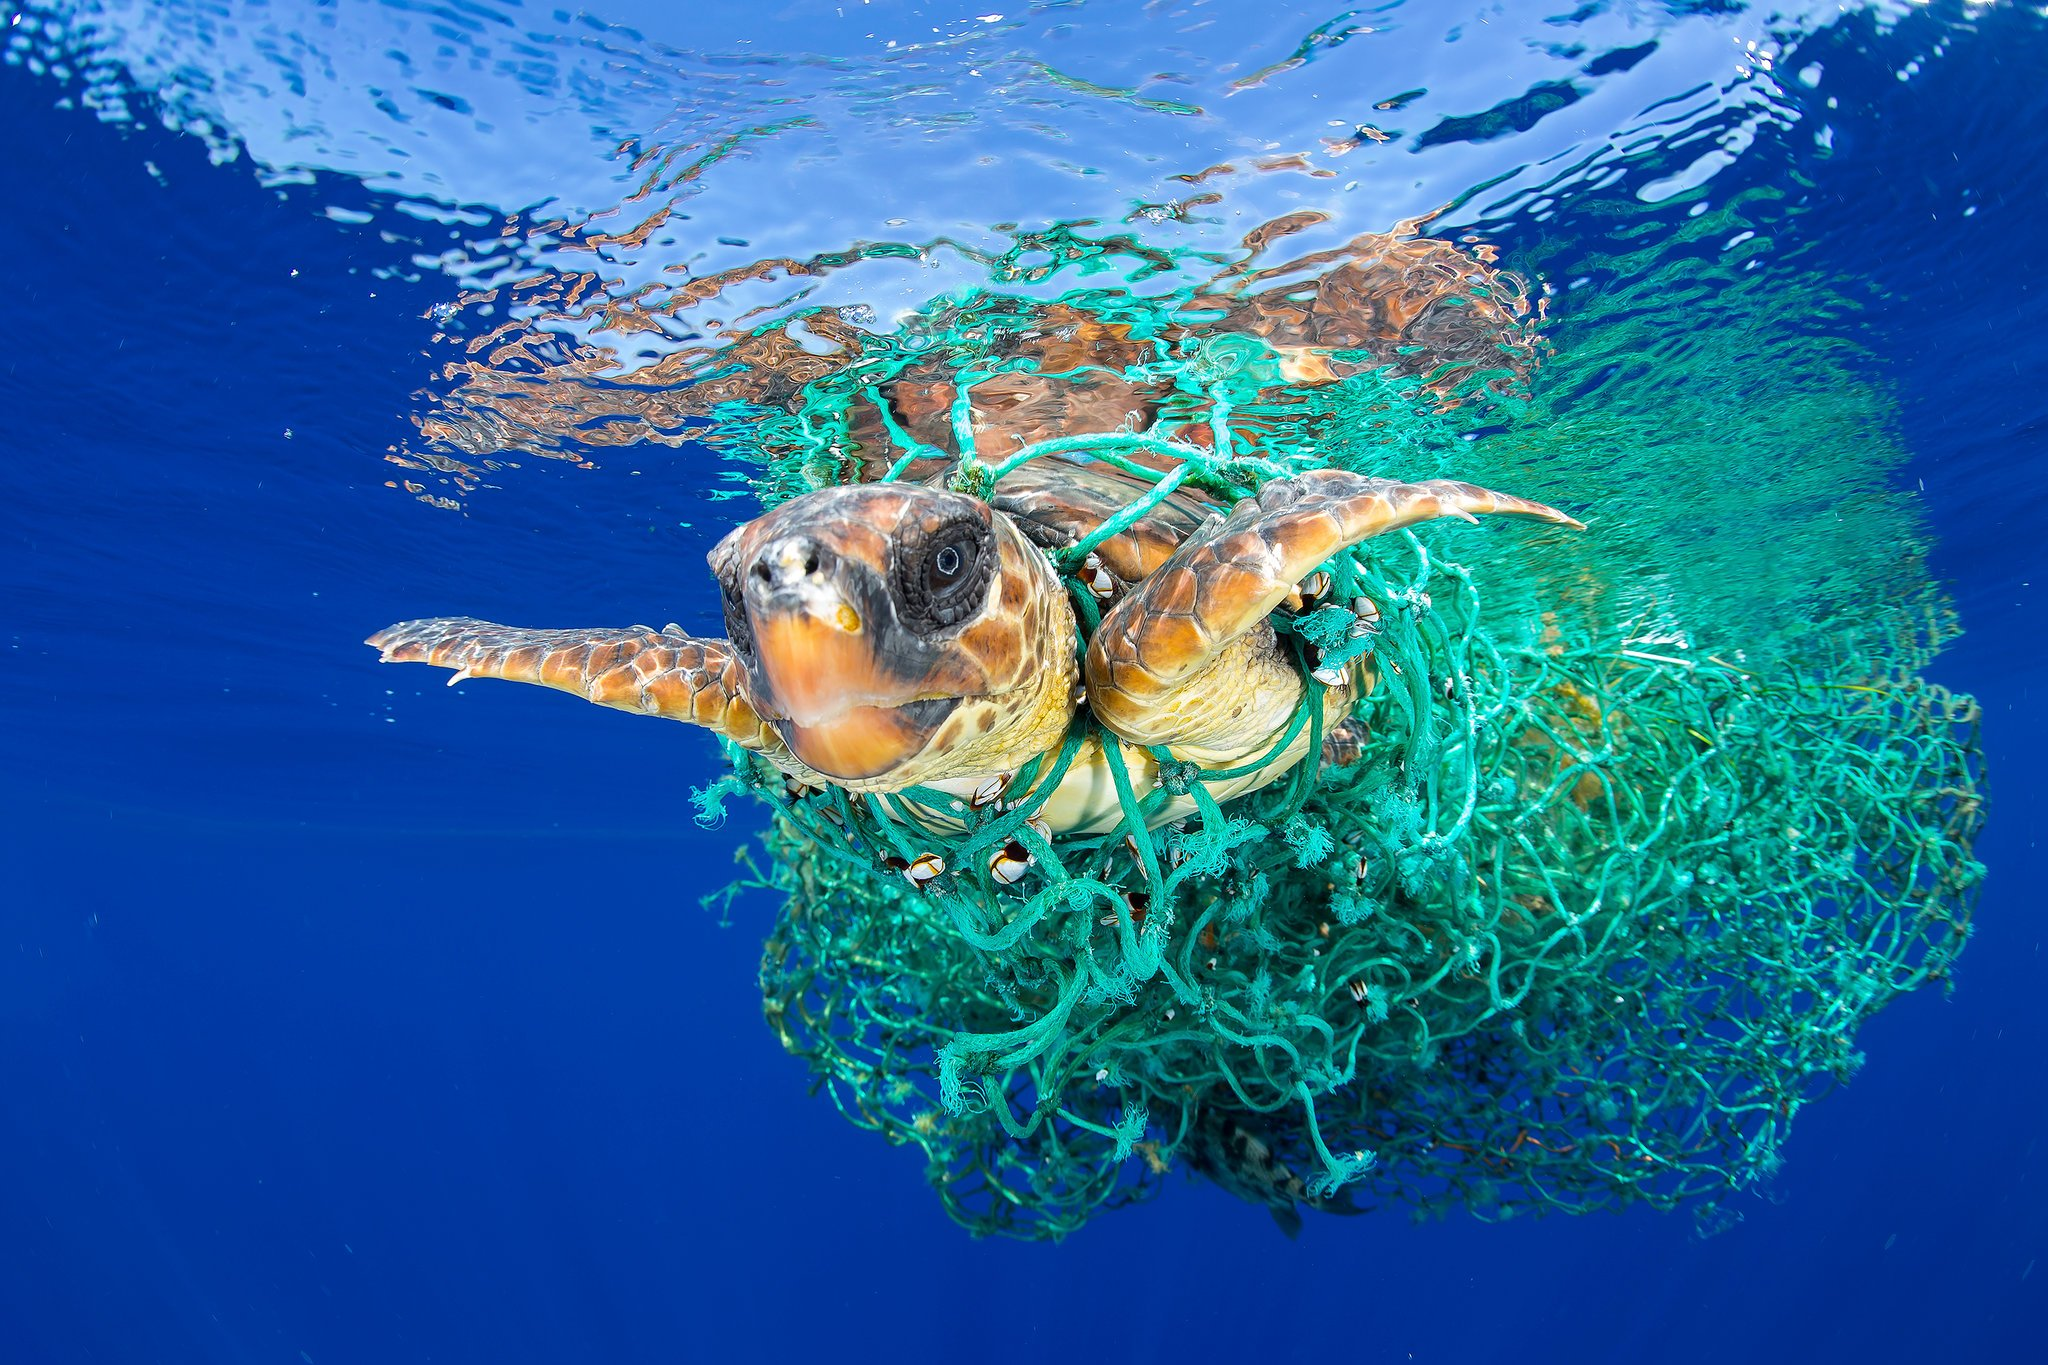 10 Shocking Facts About Plastics In Our Oceans